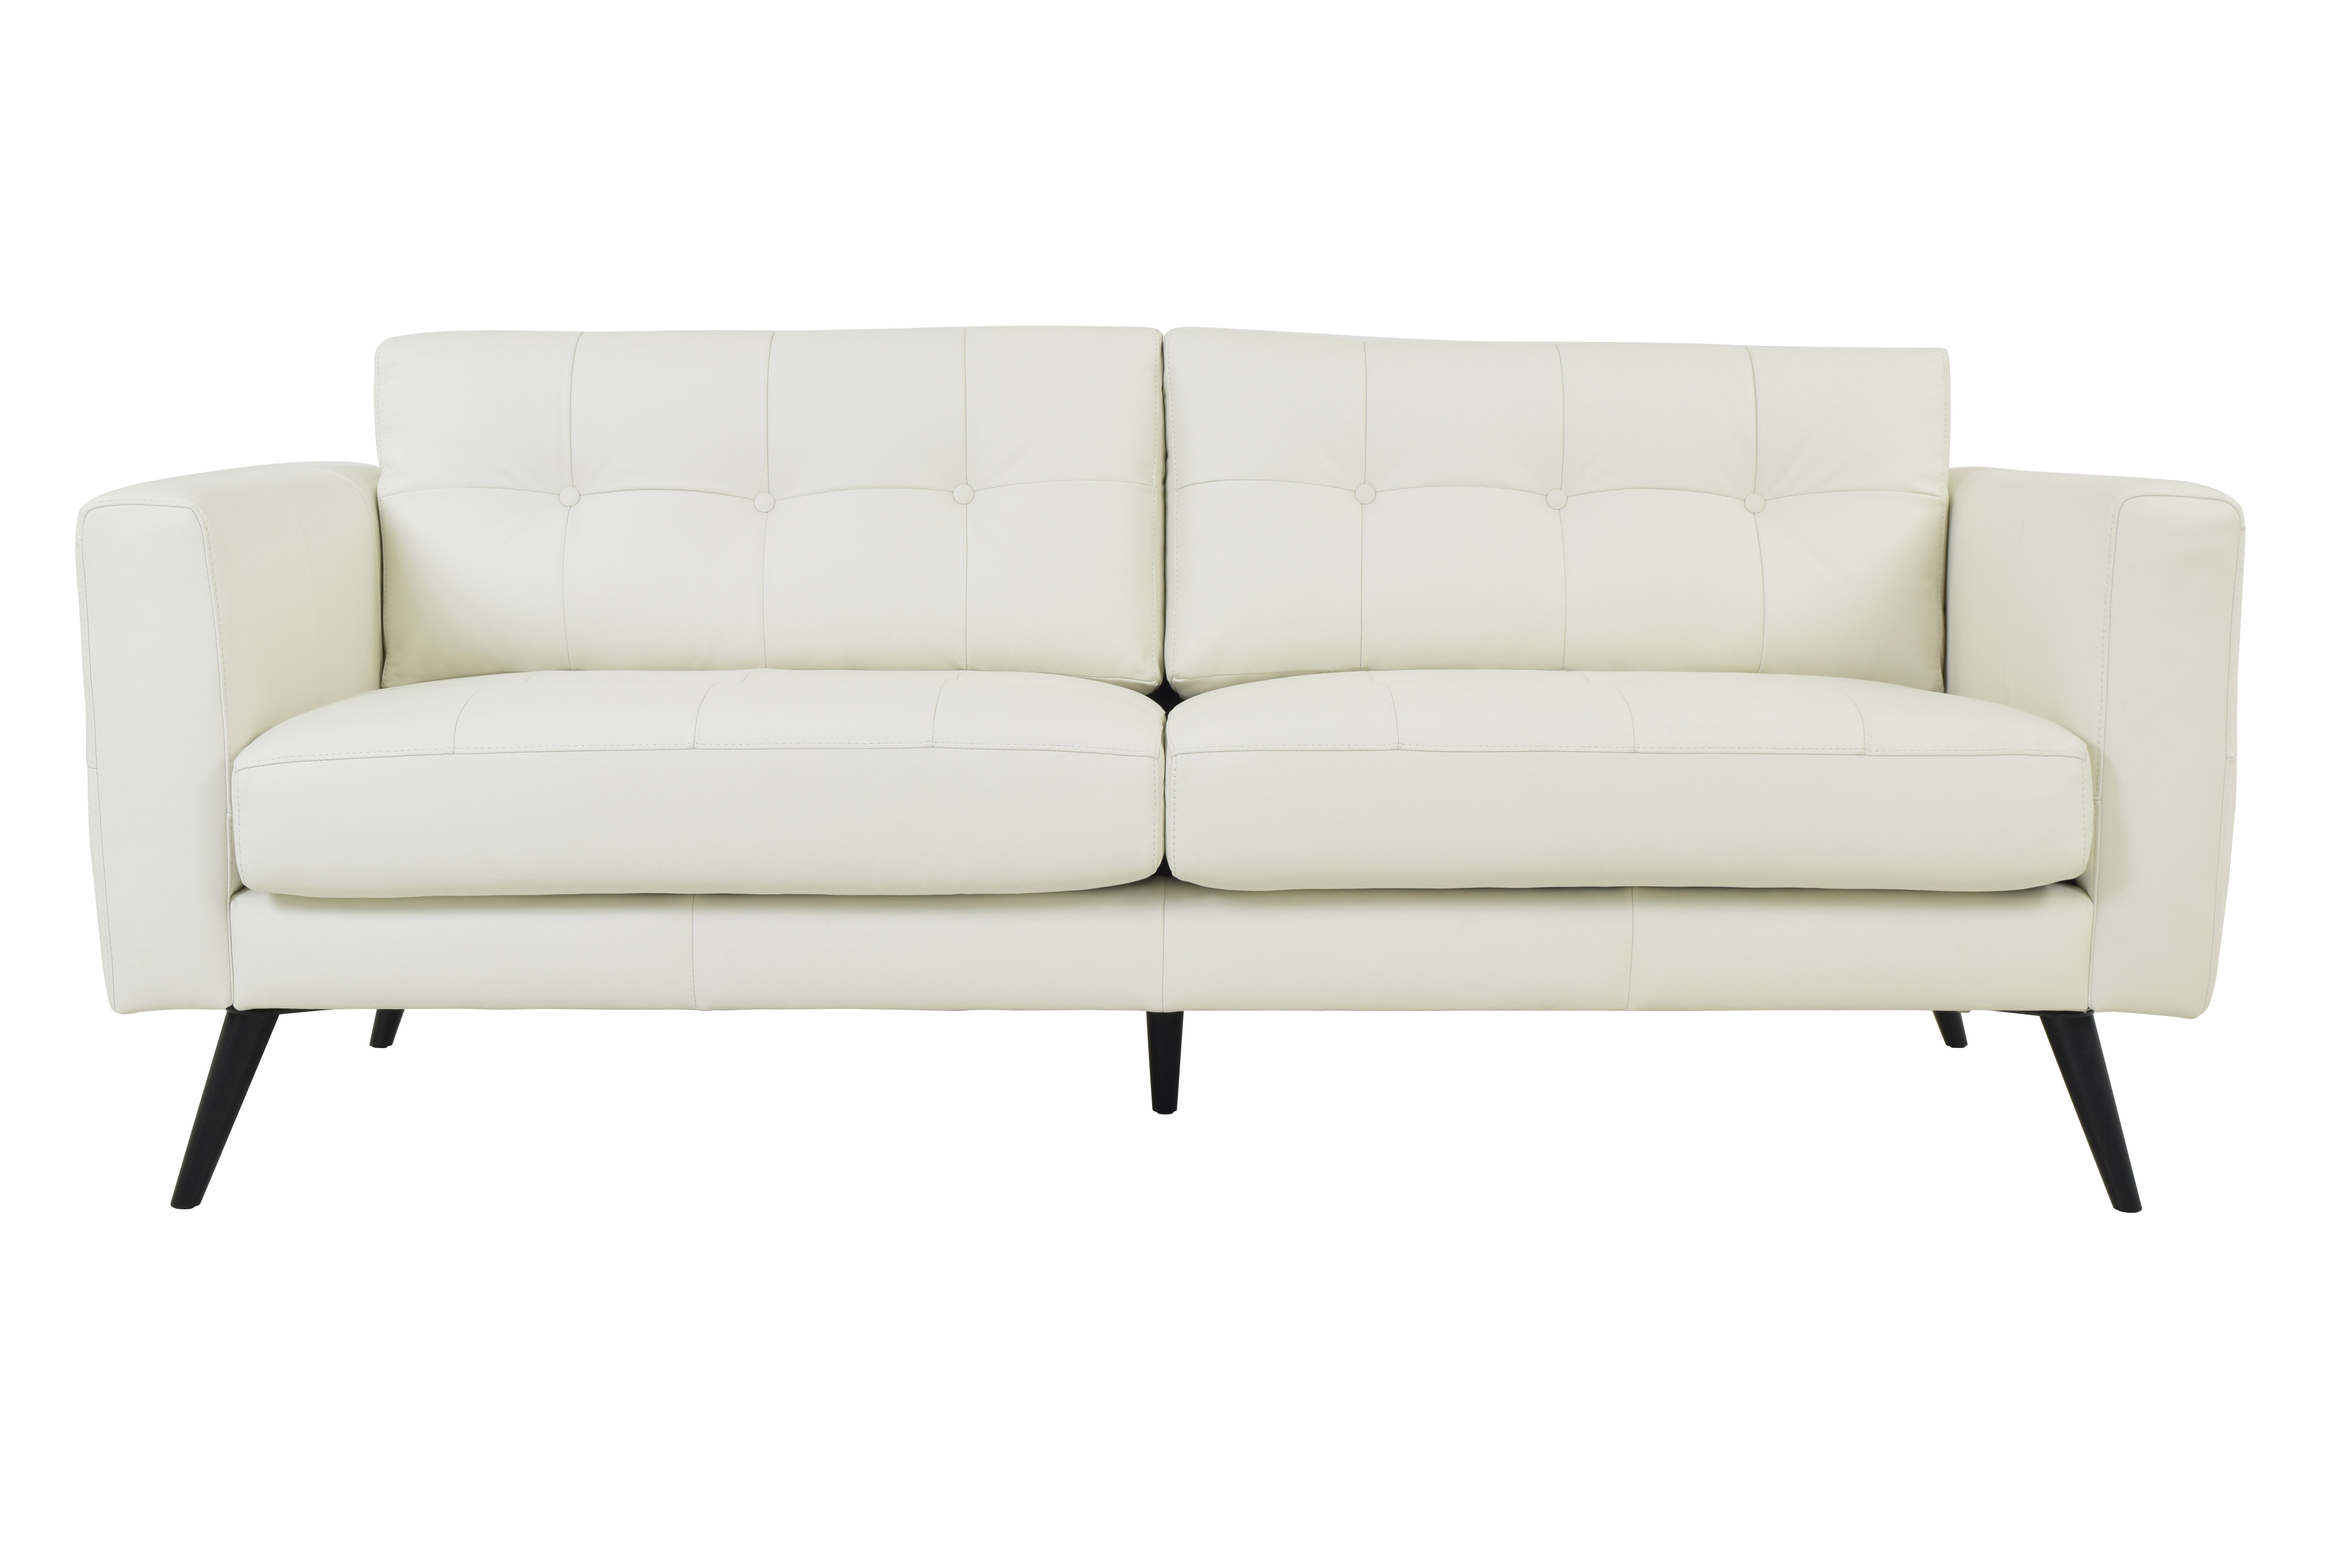 Corrigan Studio Gordon Leather Sofa | Wayfair With Regard To Gordon Arm Sofa Chairs (Image 3 of 20)